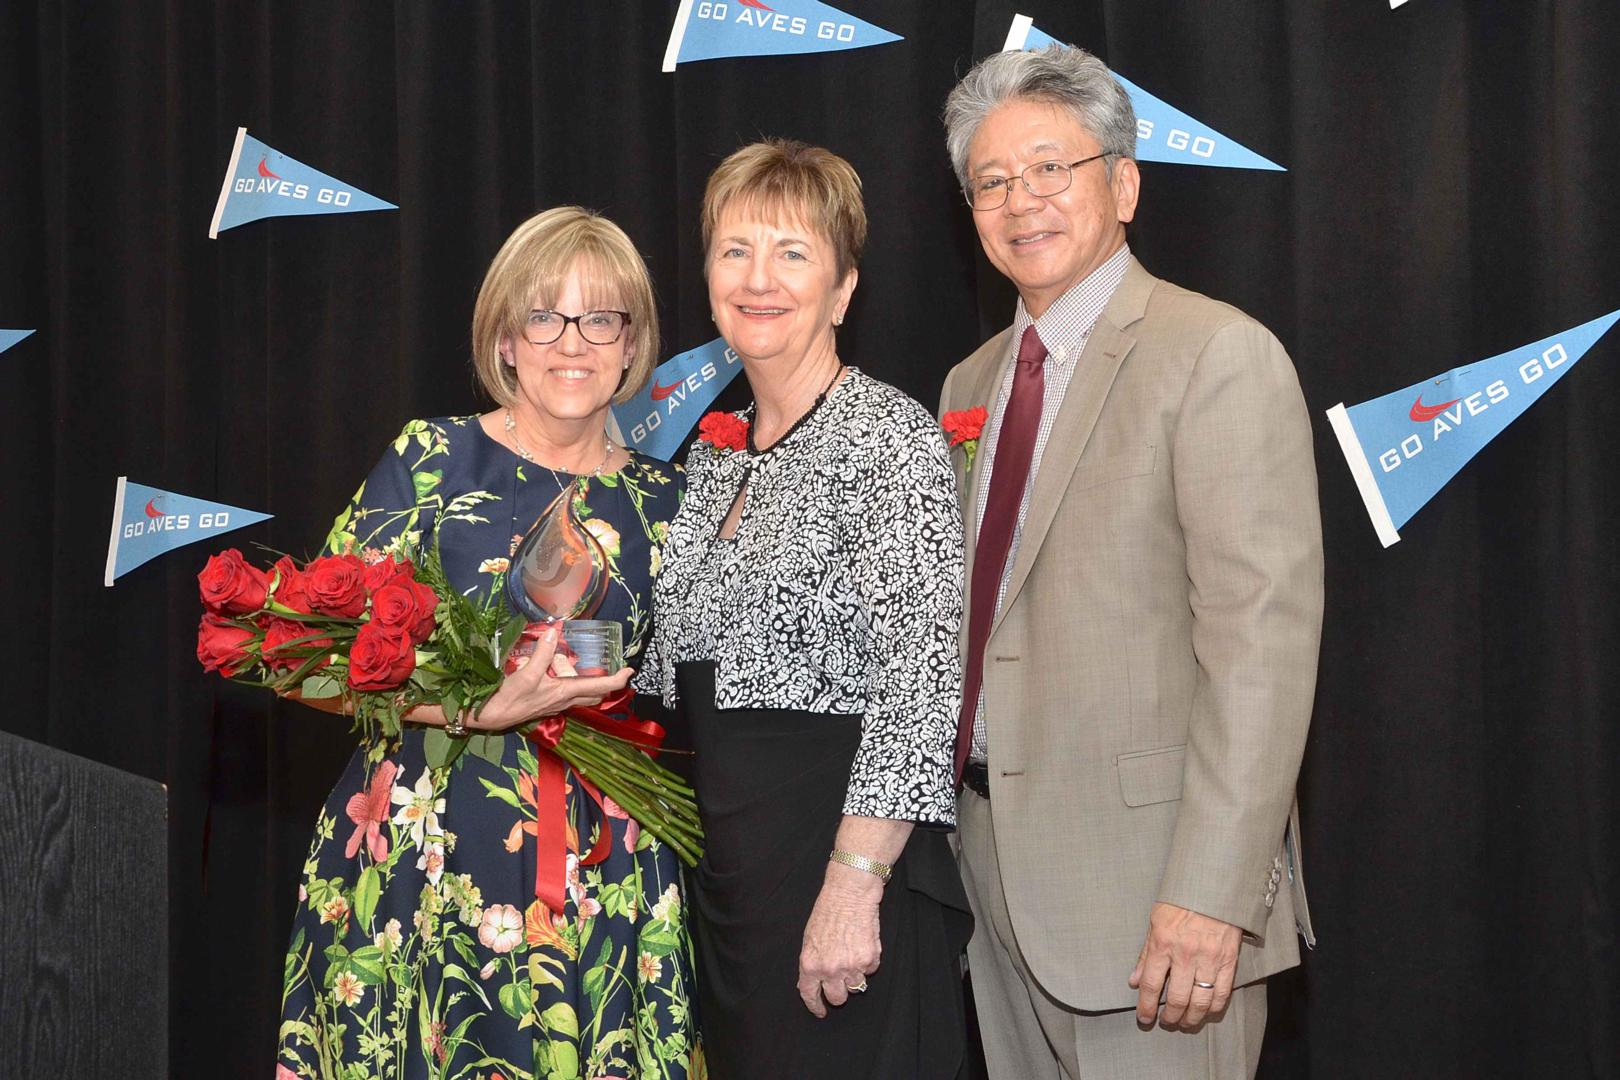 Spirit of Avenues Award to Patricia Grimes - HD Video